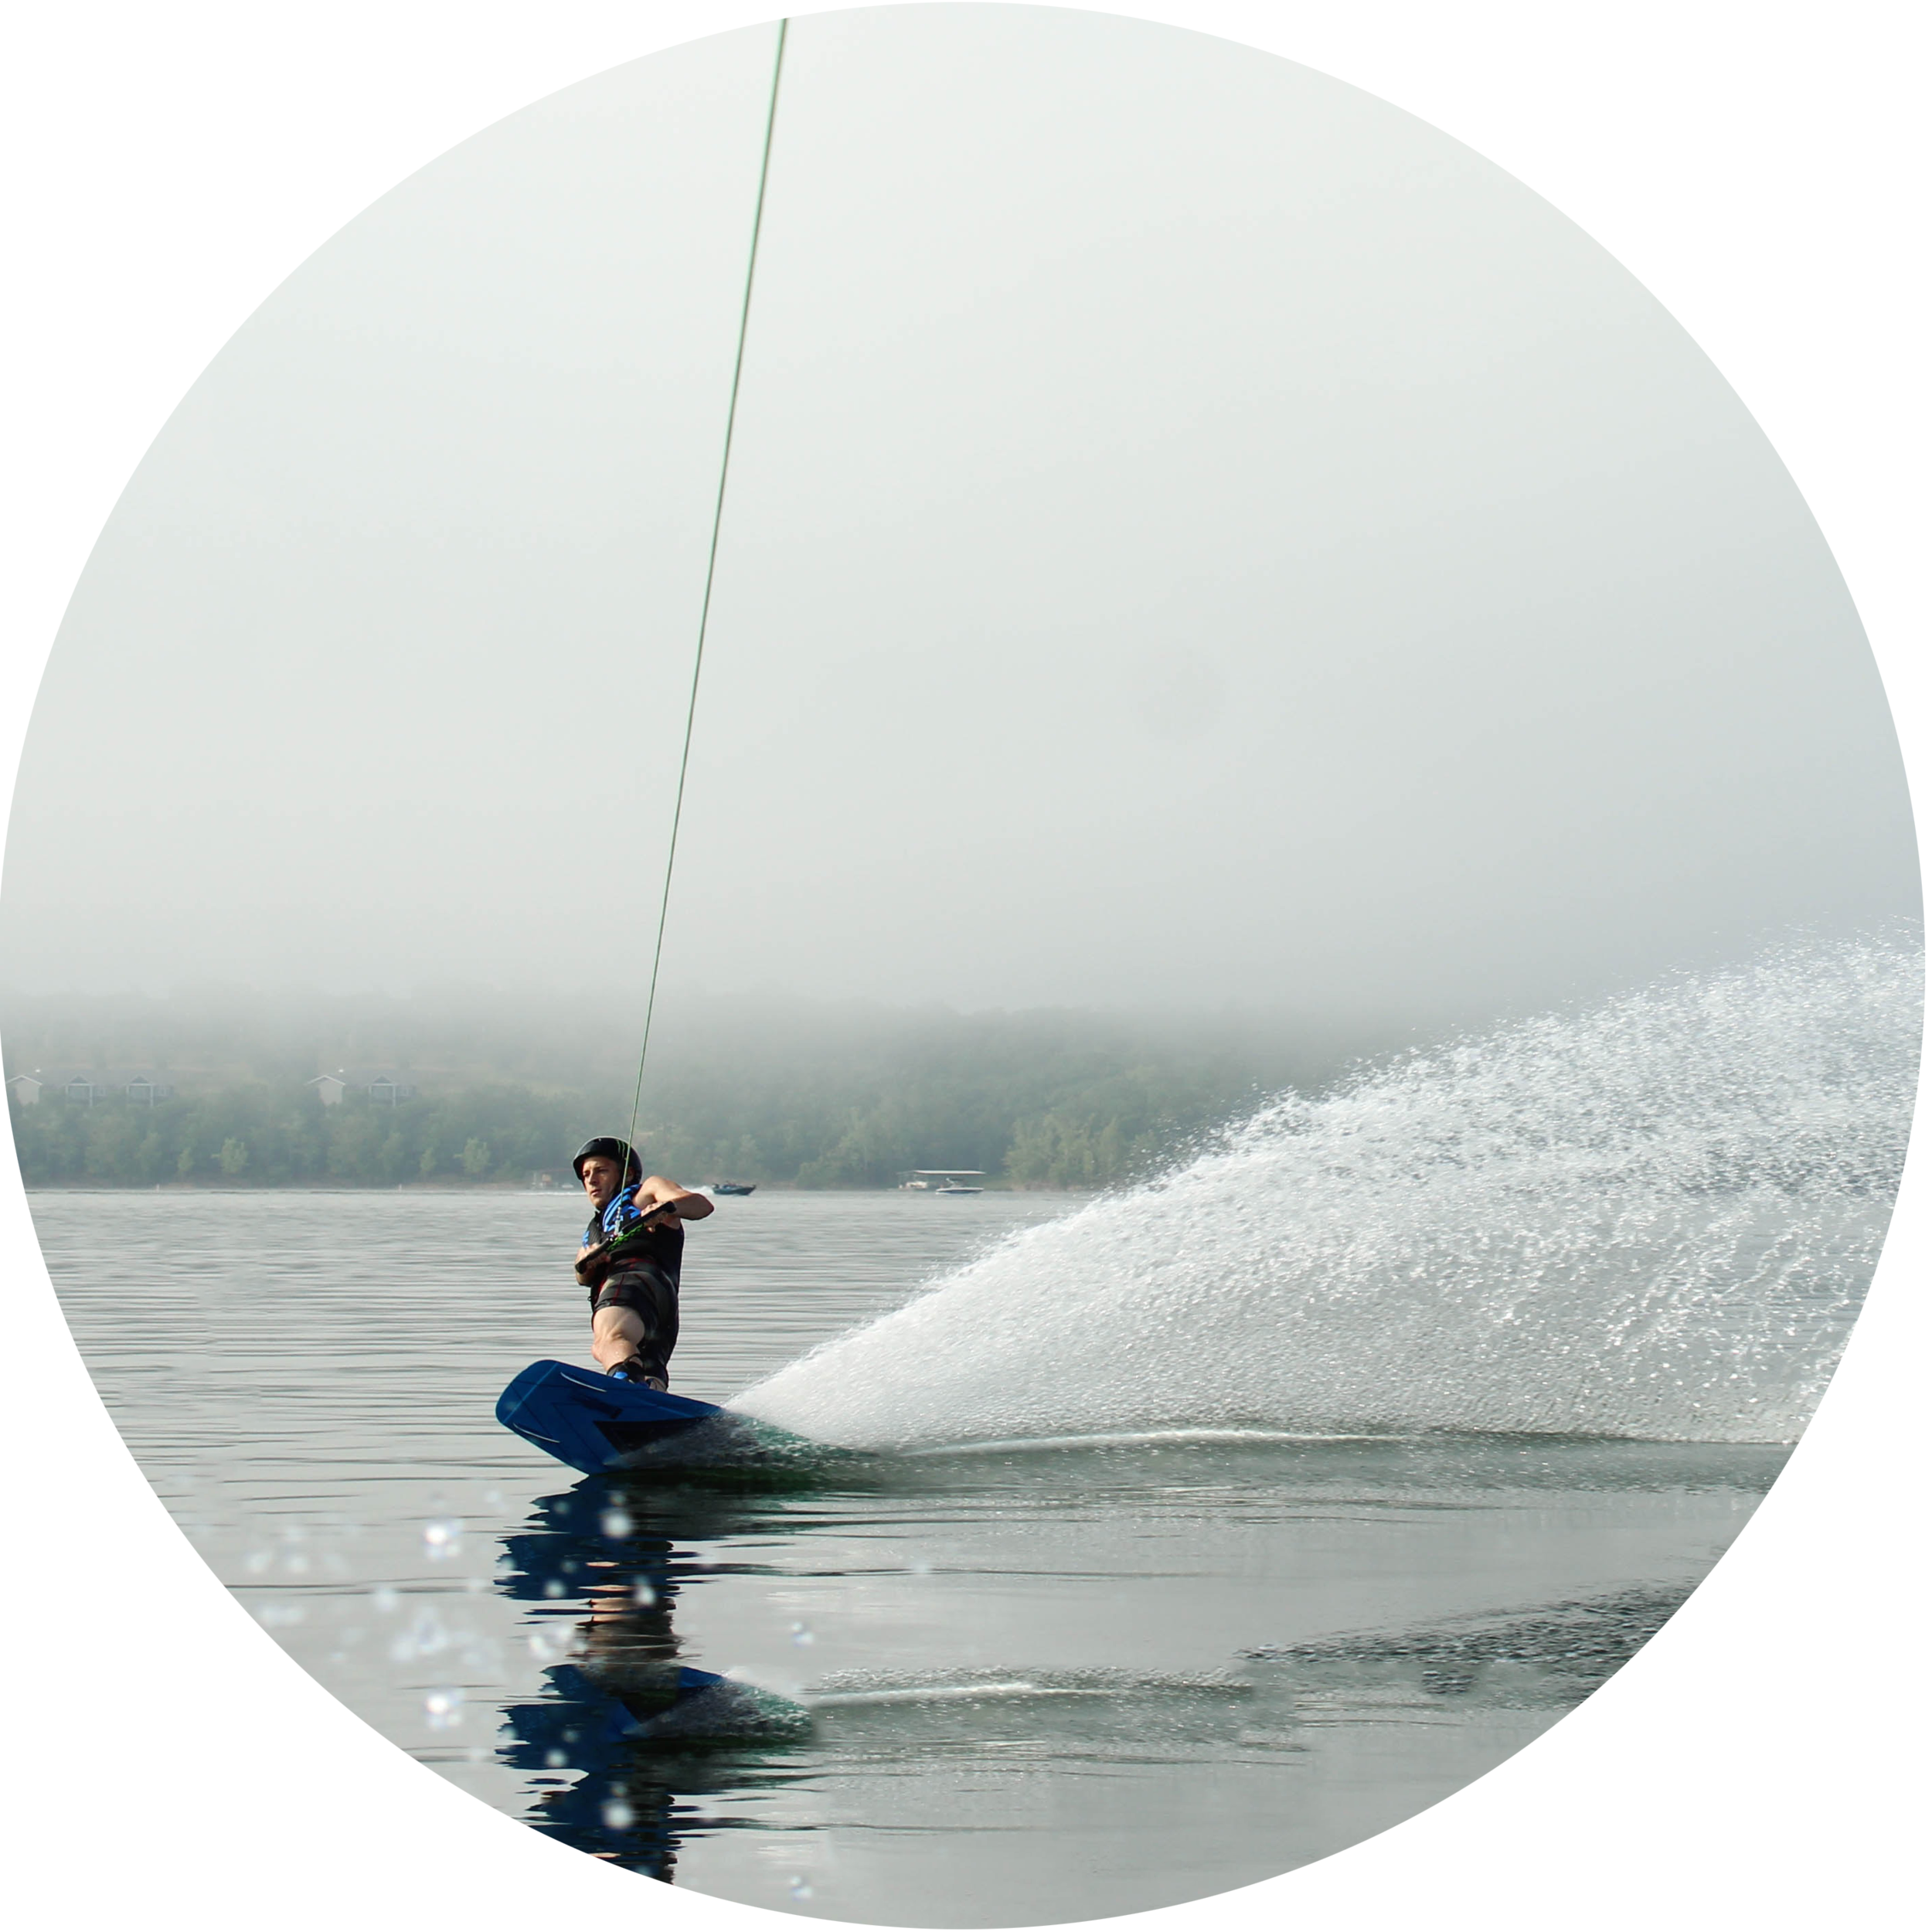 Lake Activities - If camping near one of the lakes in the area,take advantage of the many activities including camping, fishing, boating, water skiing, sailing, windsurfing, picnicking, hiking and equestrian trails, mountain biking, canoeing, and bird watching.